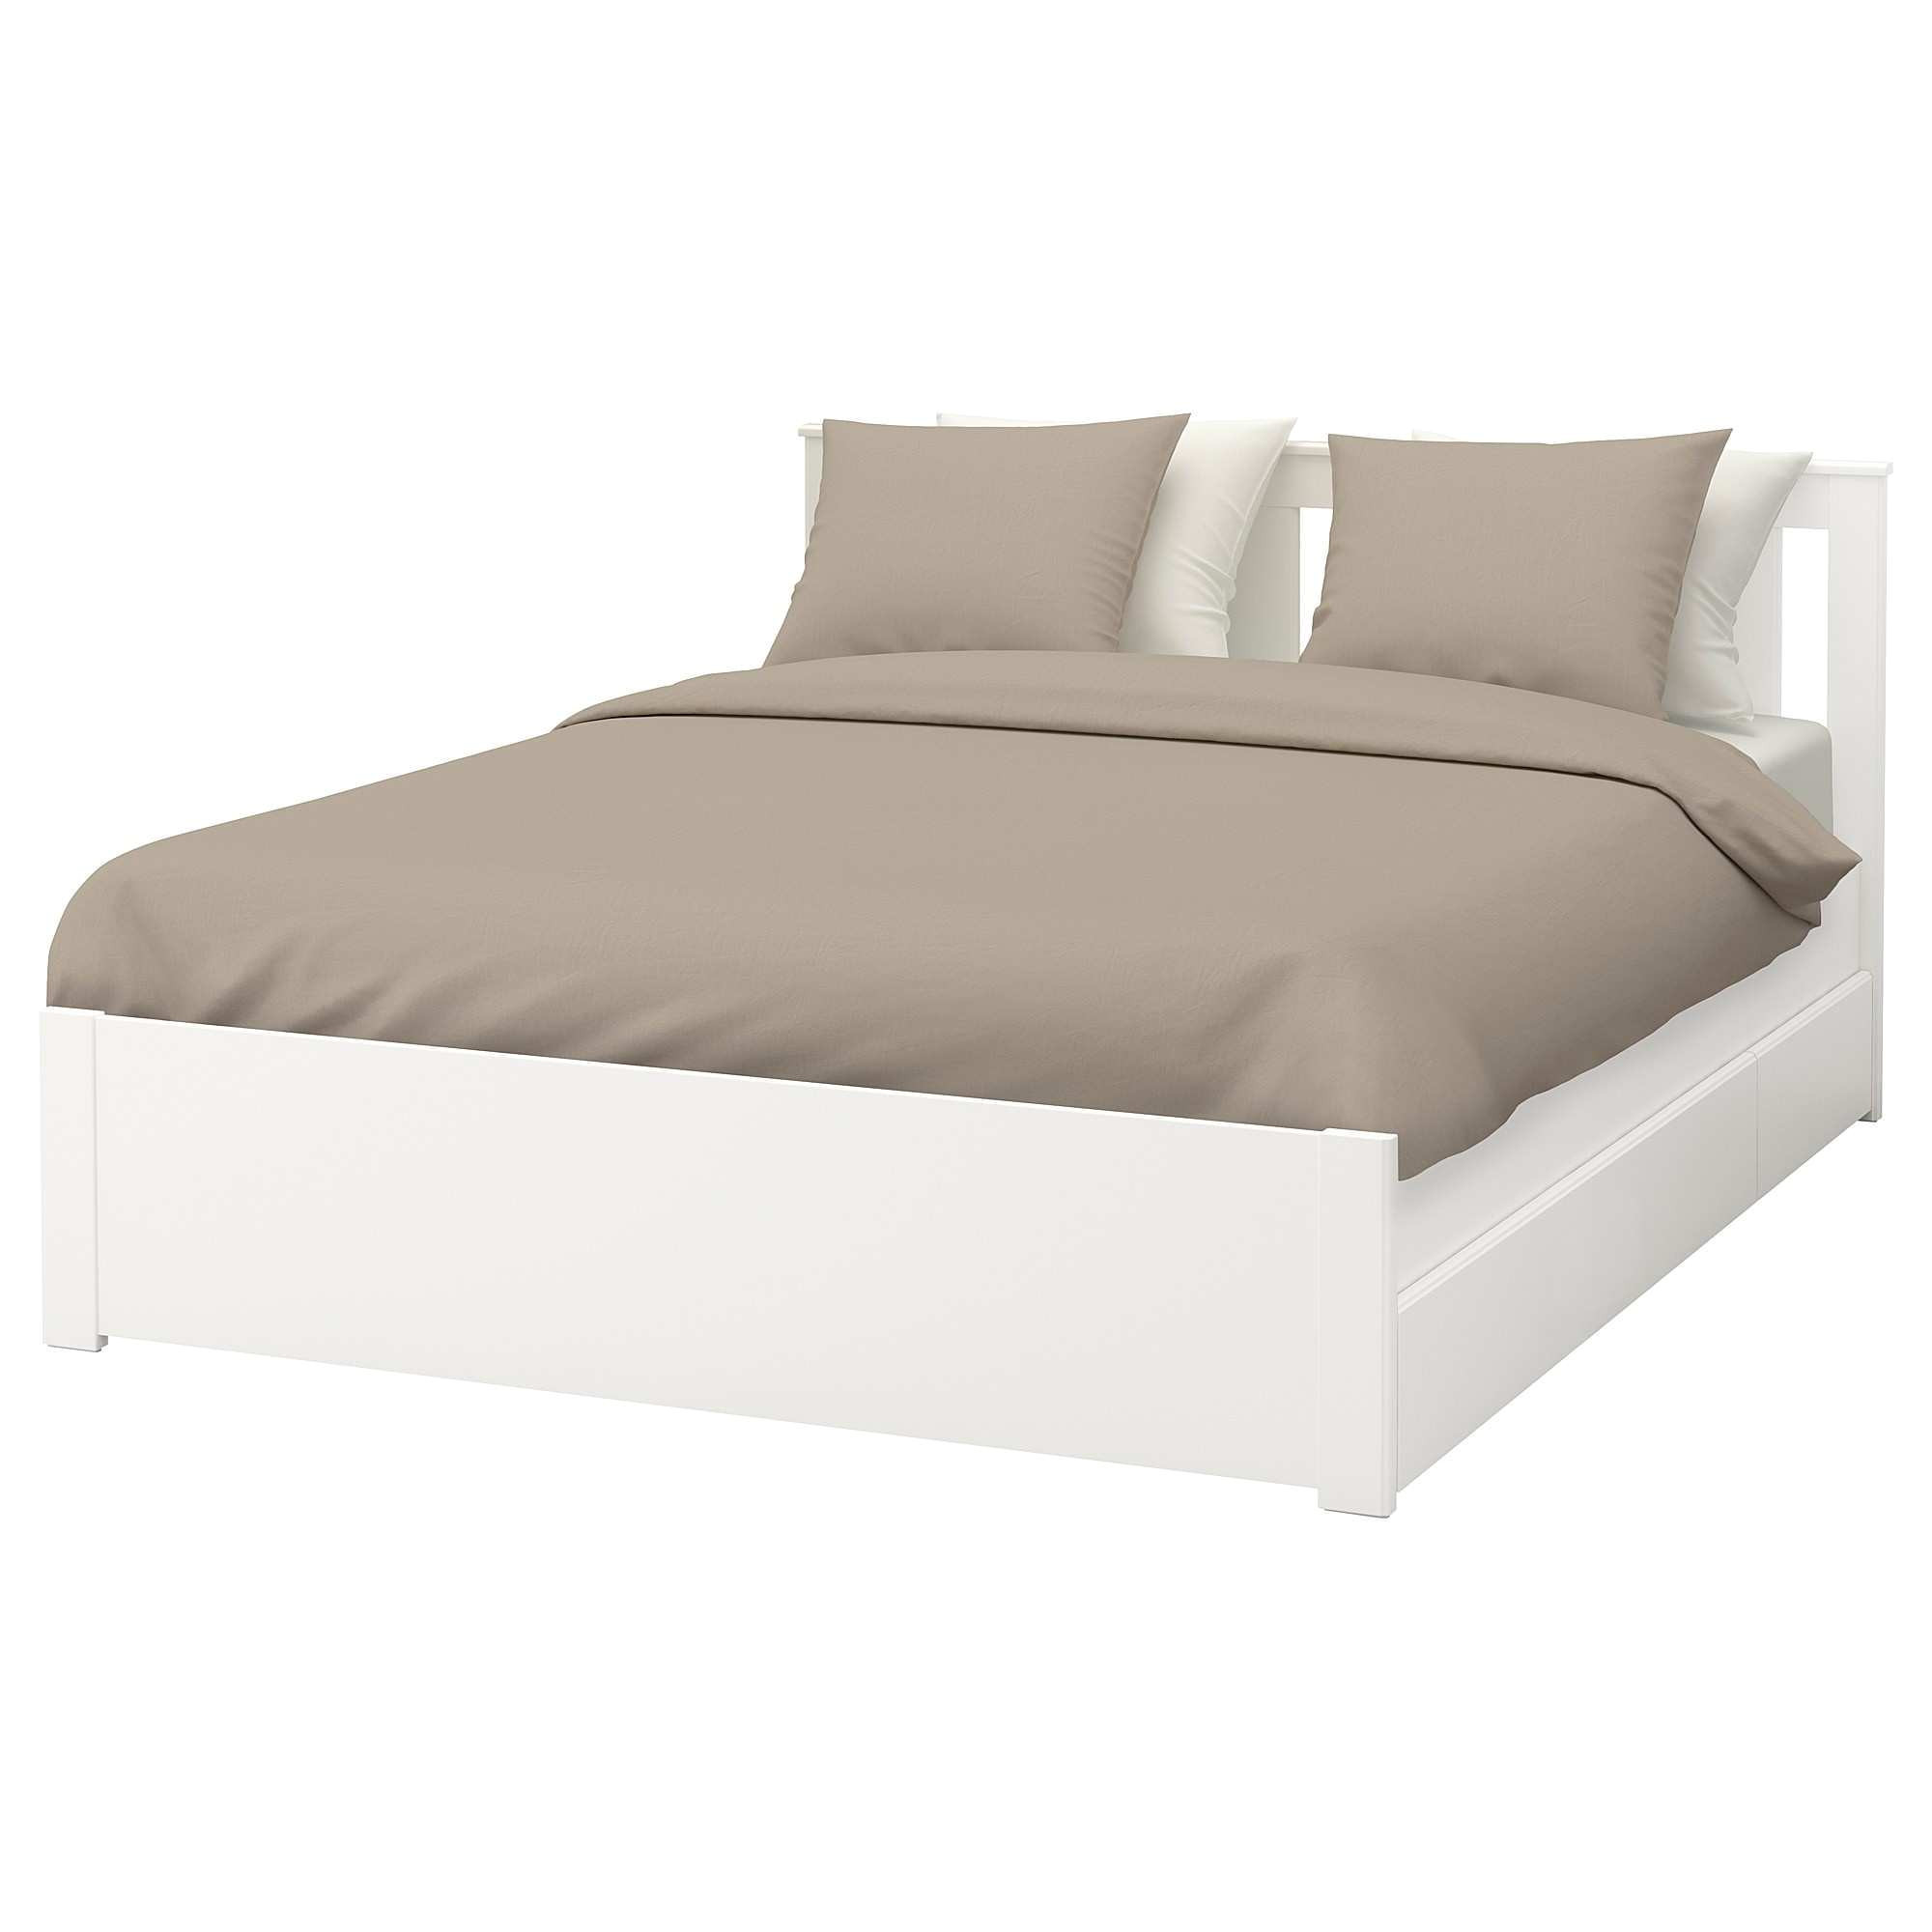 platform bed frame queen ikea luxury svelvik bed frame queen ikea